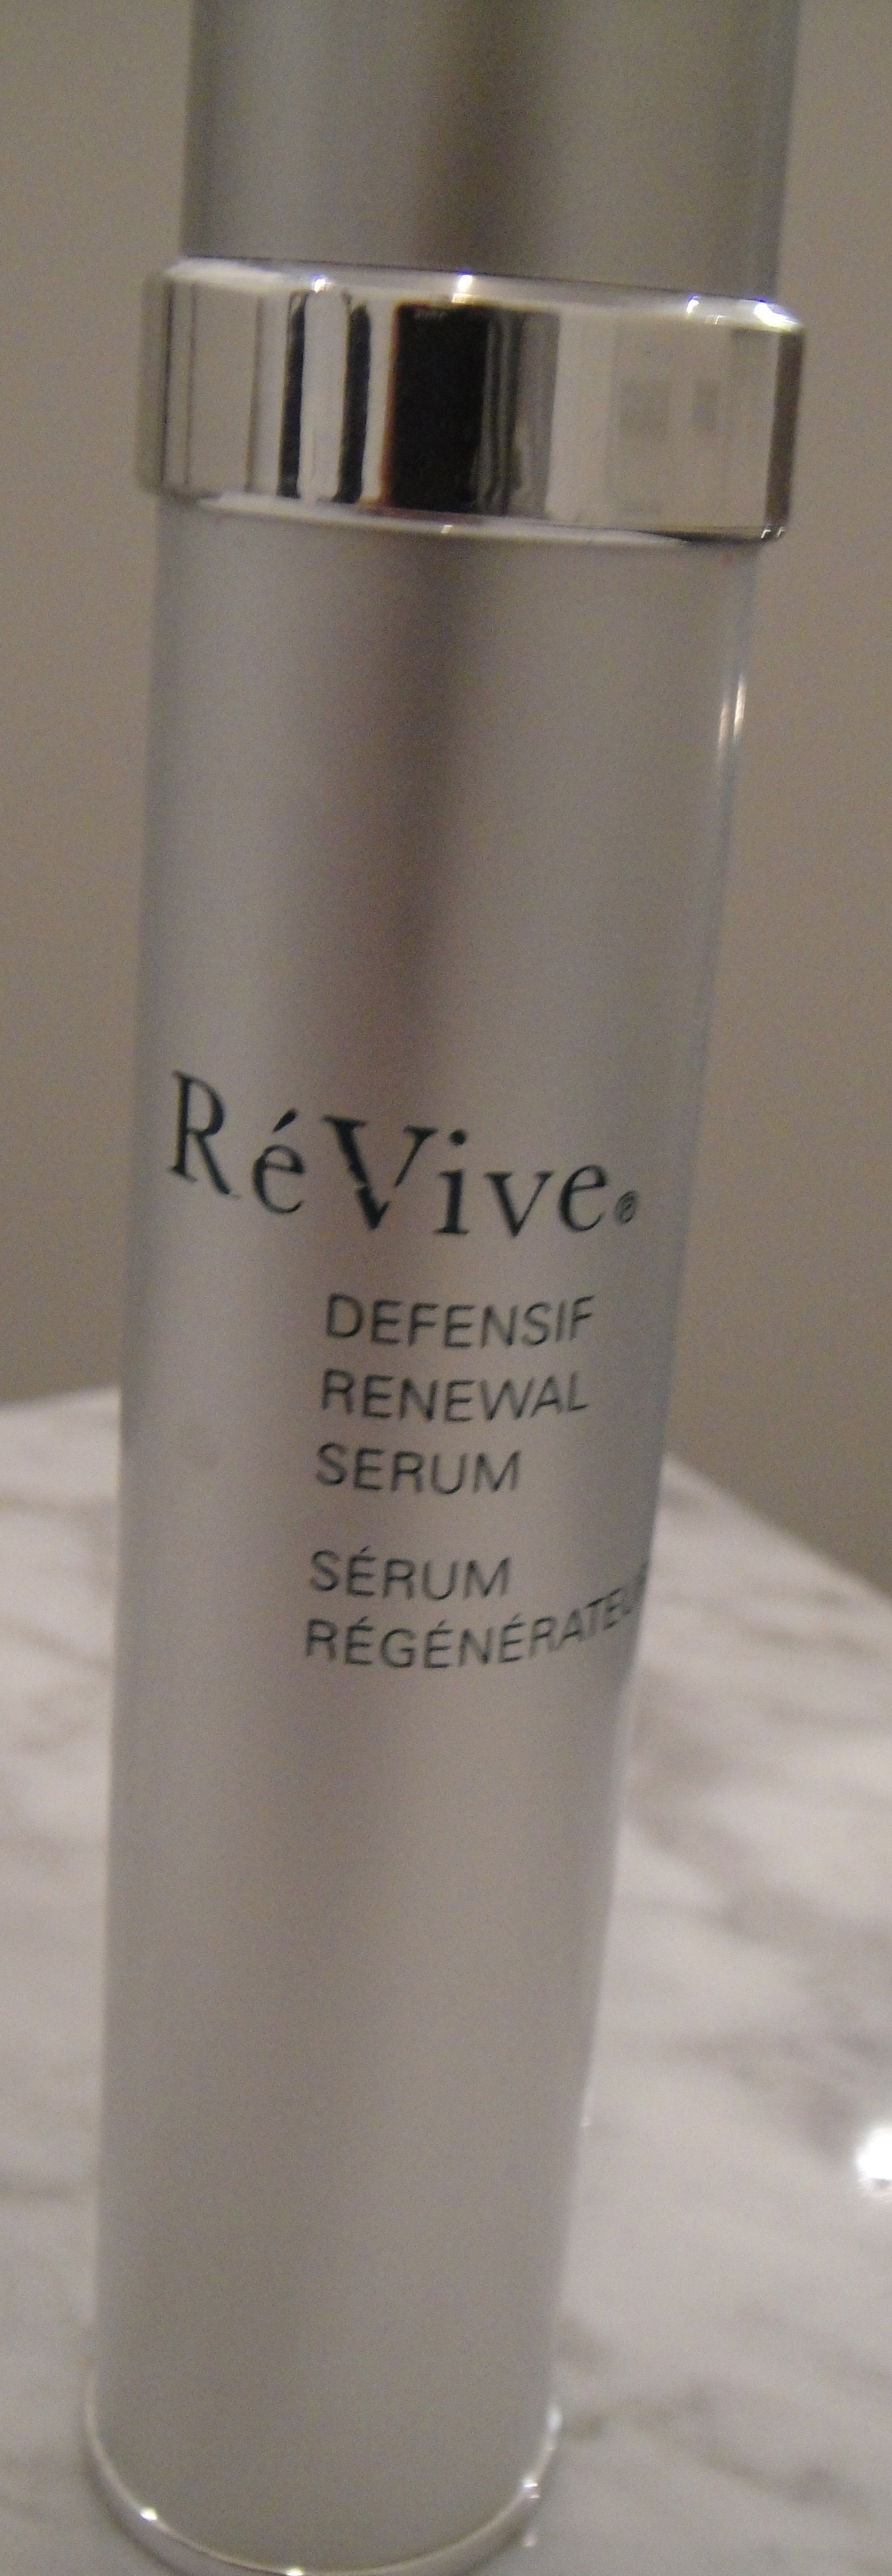 Face: Re Vive, Defensif Renewal Serum